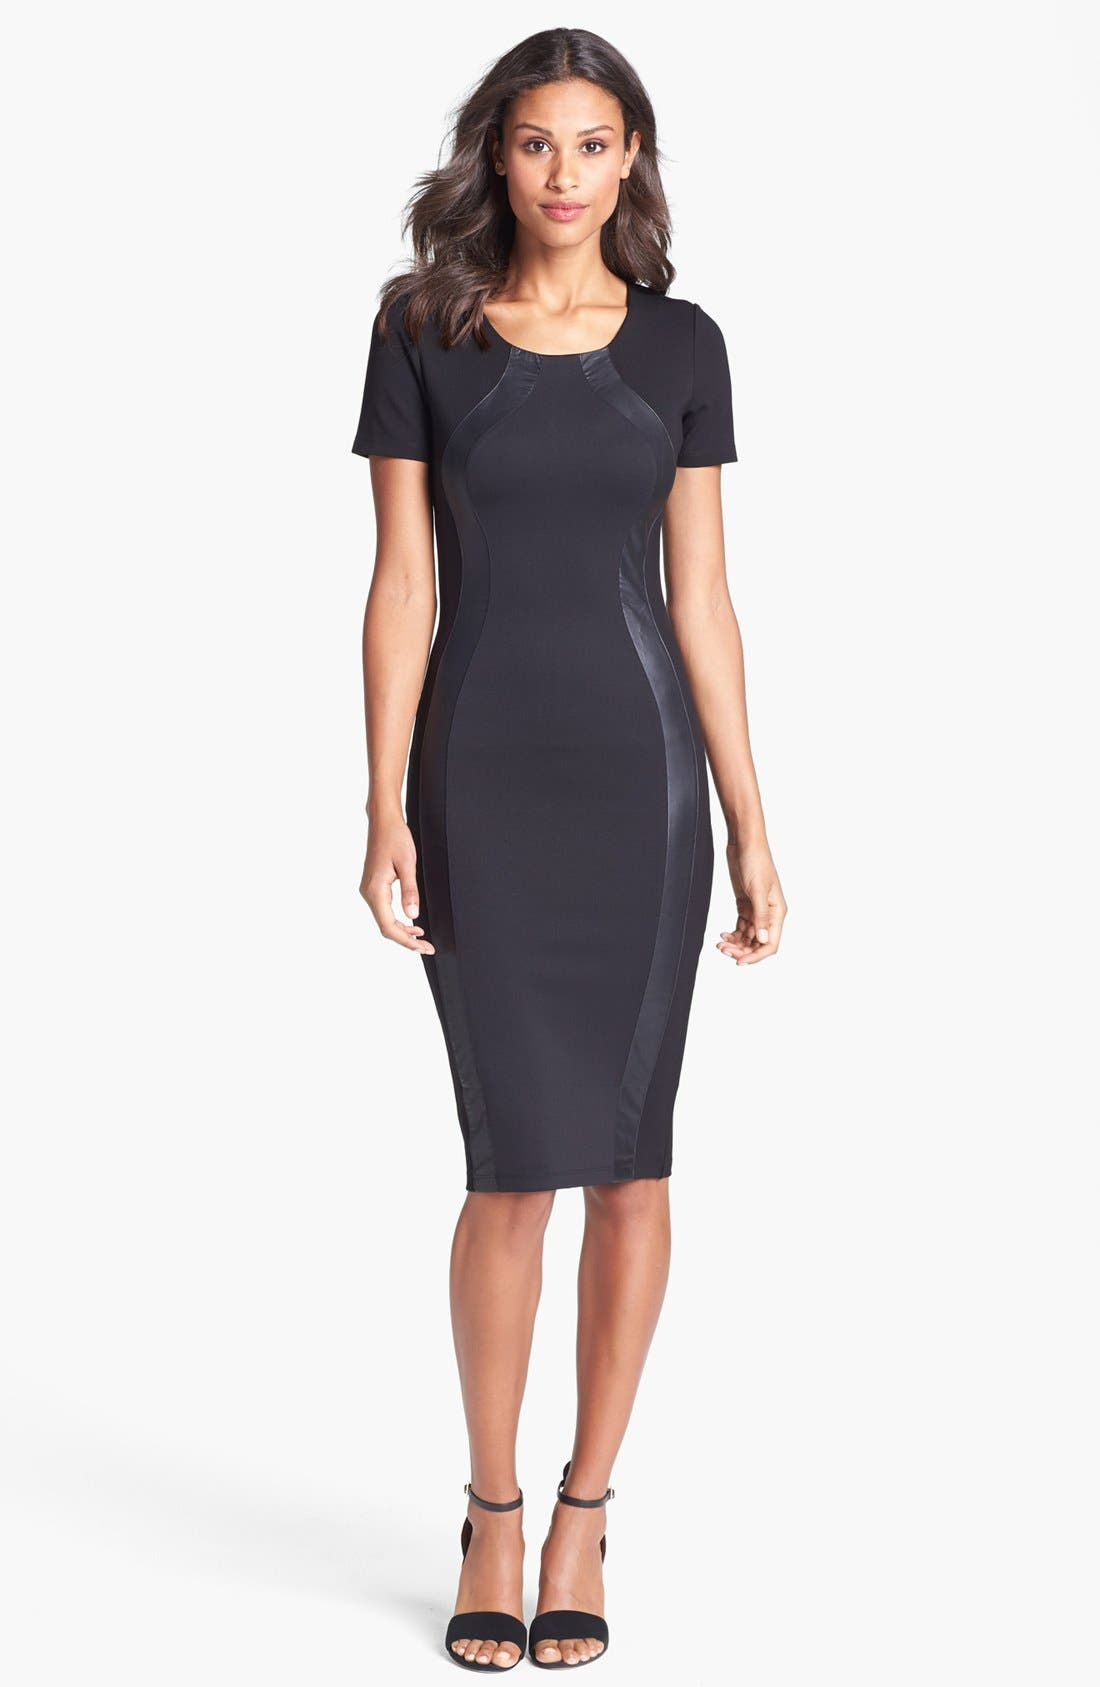 Alternate Image 1 Selected - Felicity & Coco Faux Leather Silhouette Body-Con Dress (Nordstrom Exclusive)